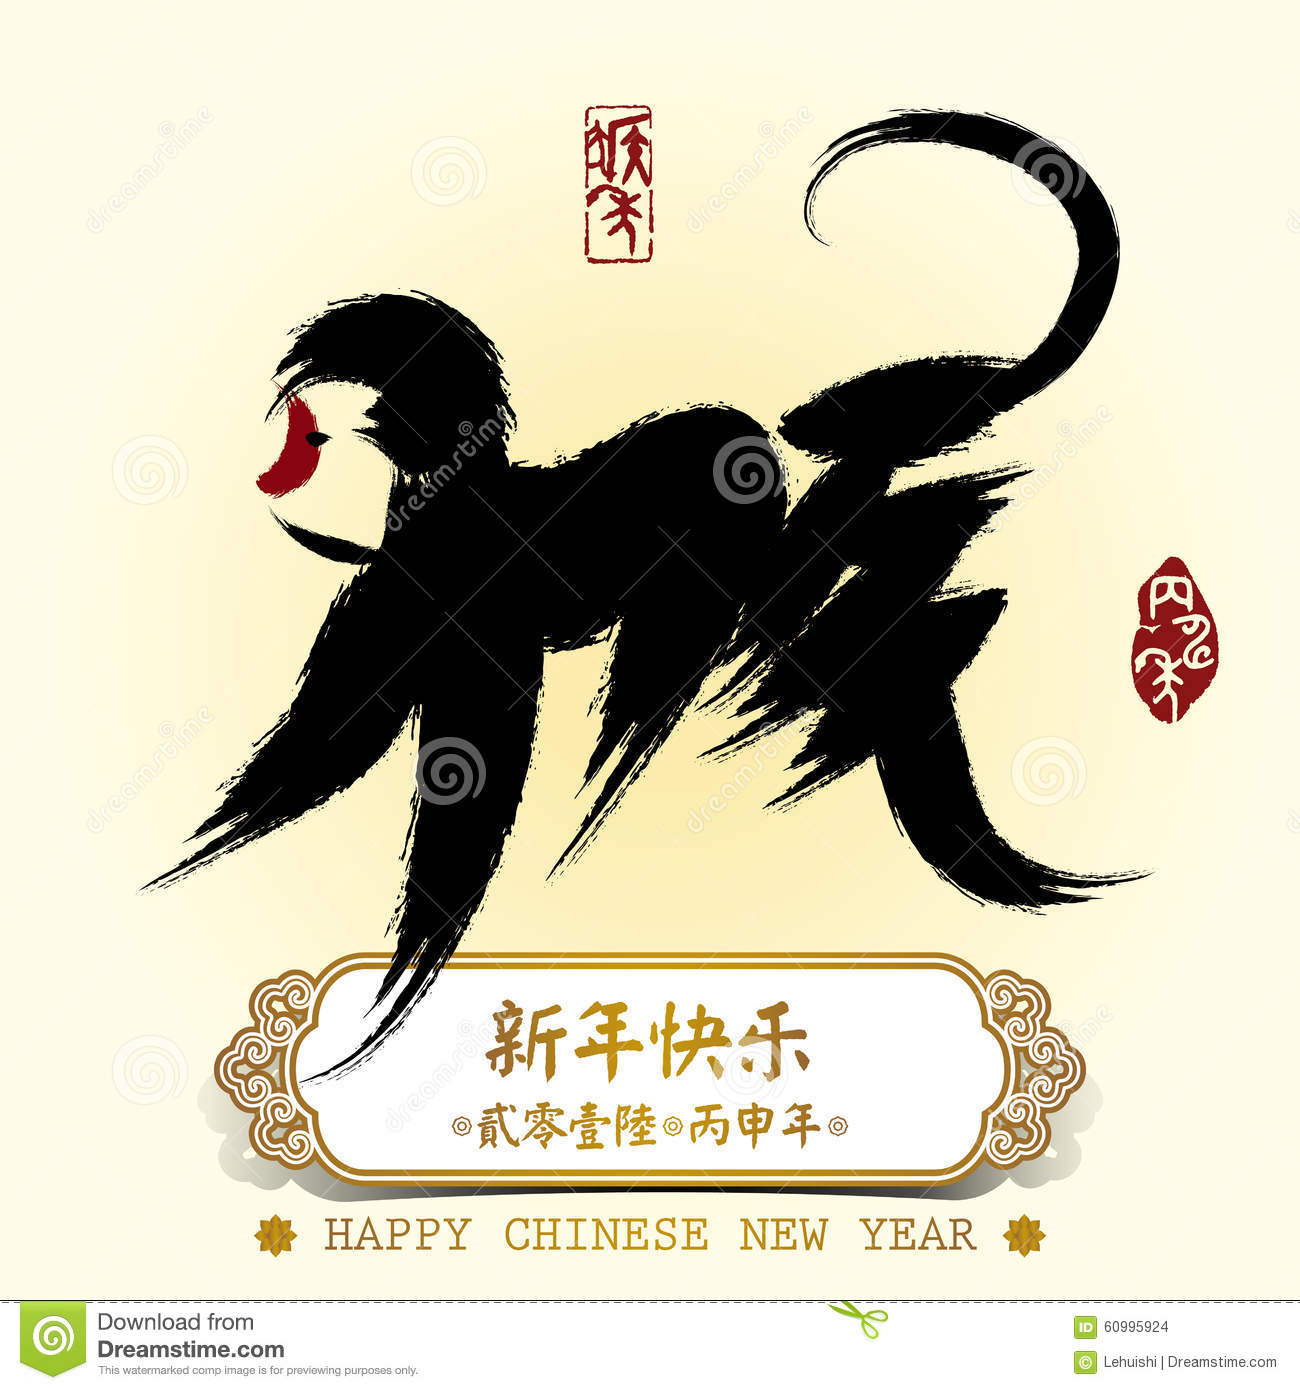 Chinese Calligraphy Meaning Is Monkey And Seal Meaning